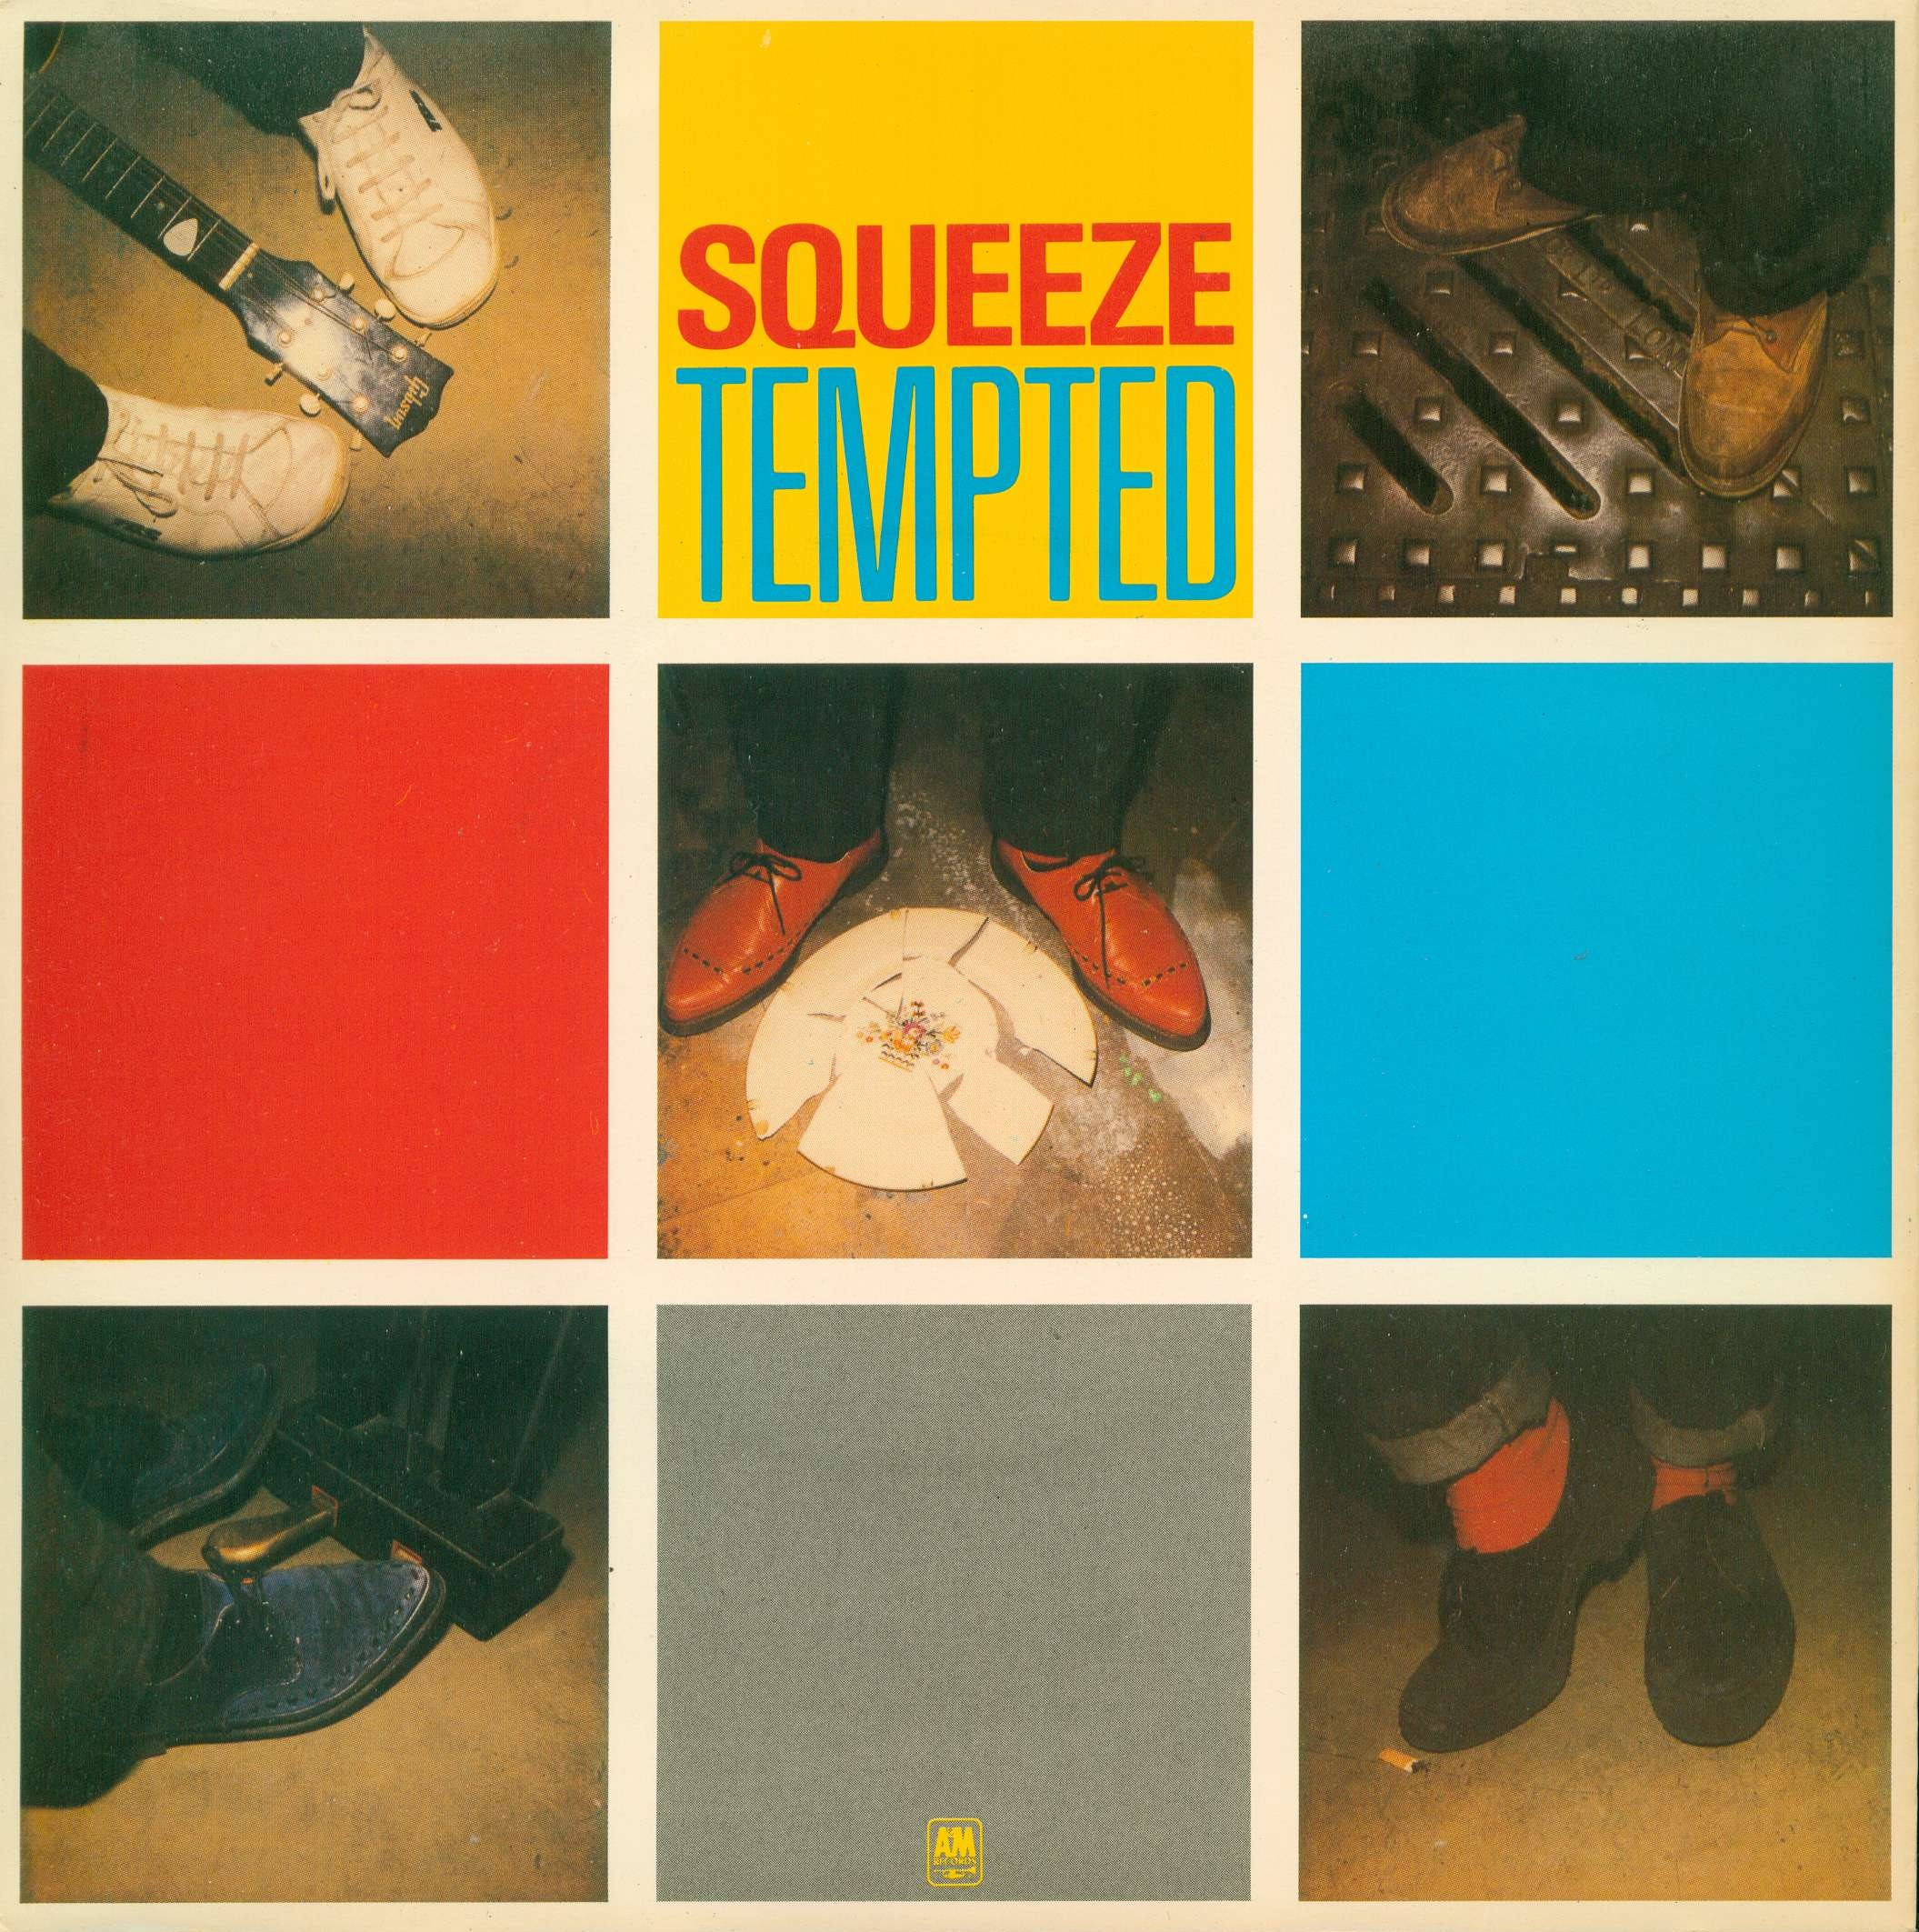 Squeeze-Tempted02.jpg